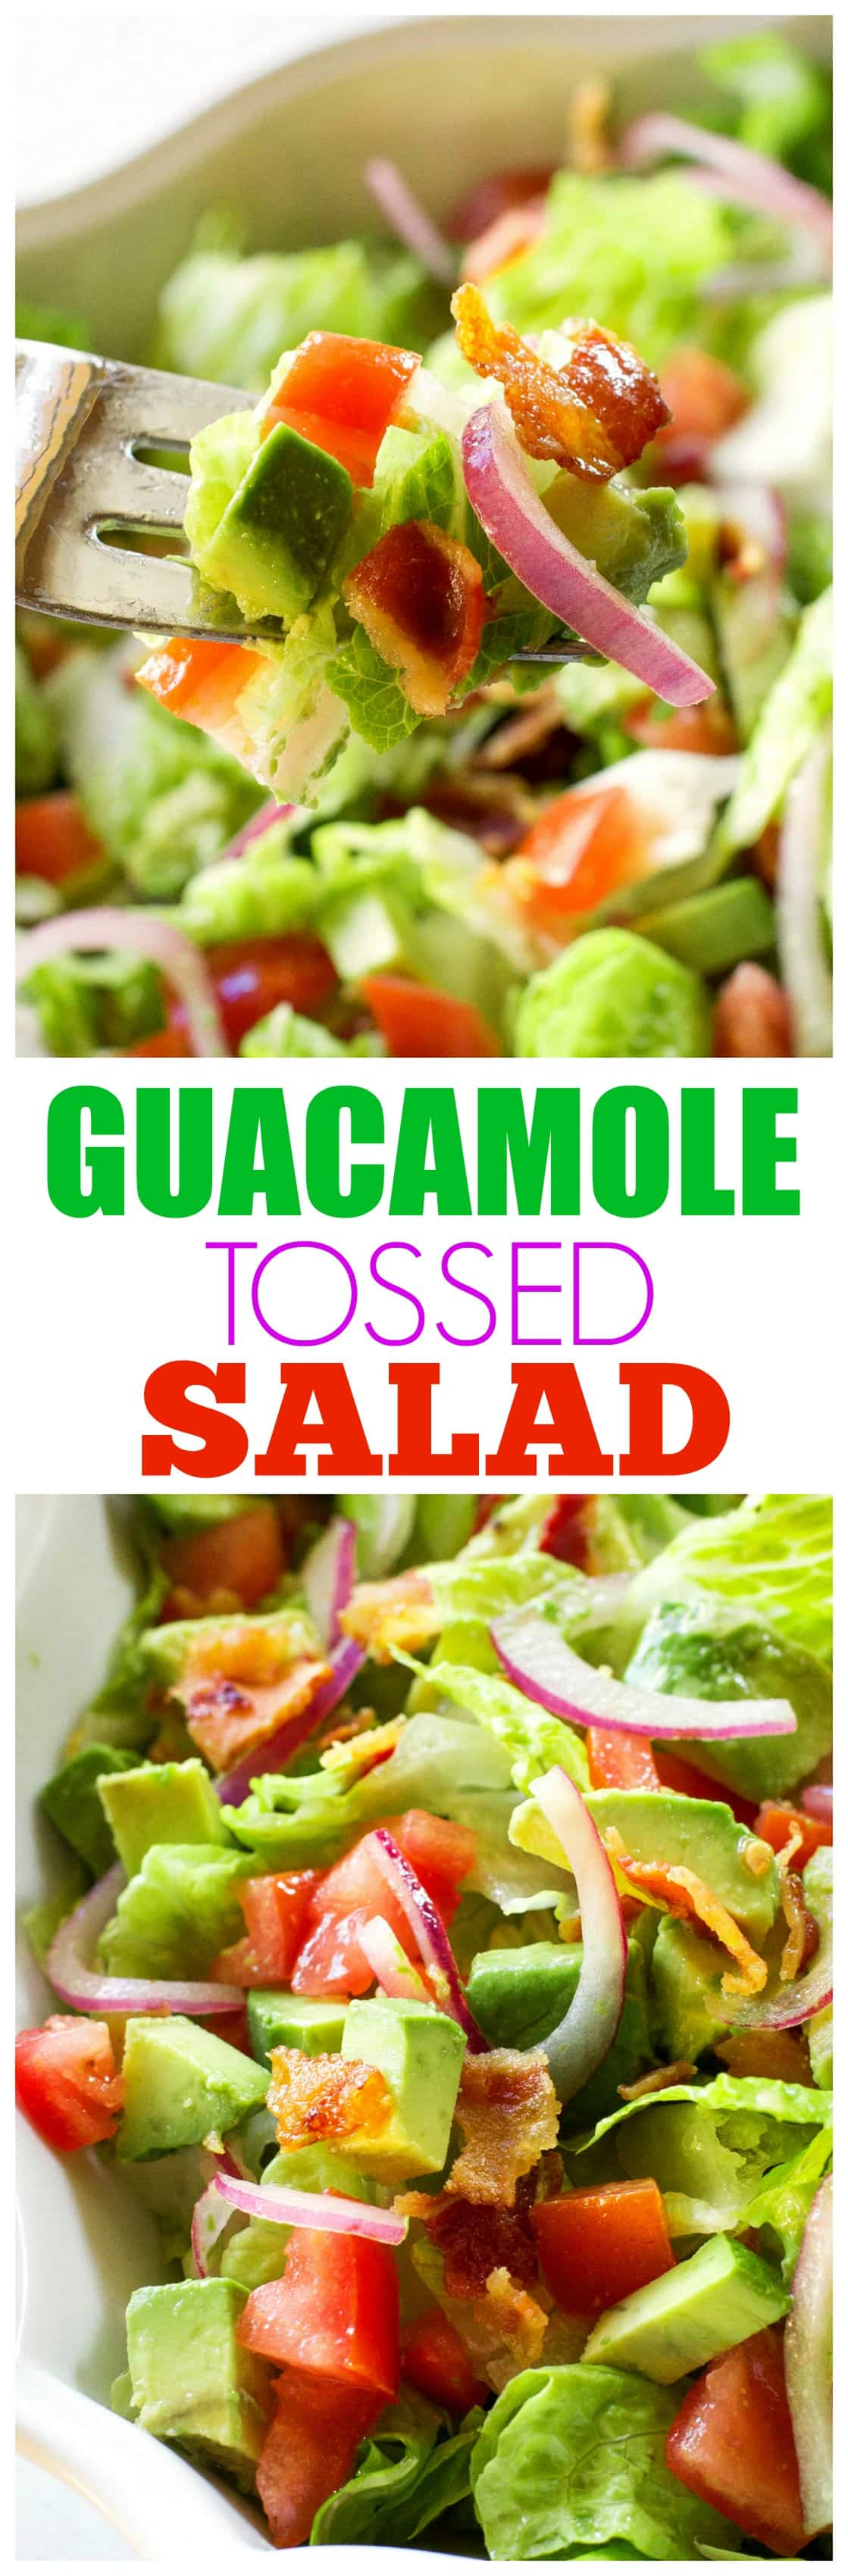 Guacamole Tossed Salad - I'm always looking for an easy salad to serve with my Mexican dishes and this is it! Honestly, you will lick the bowl. #guacamole #tossed #salad #mexican #recipe